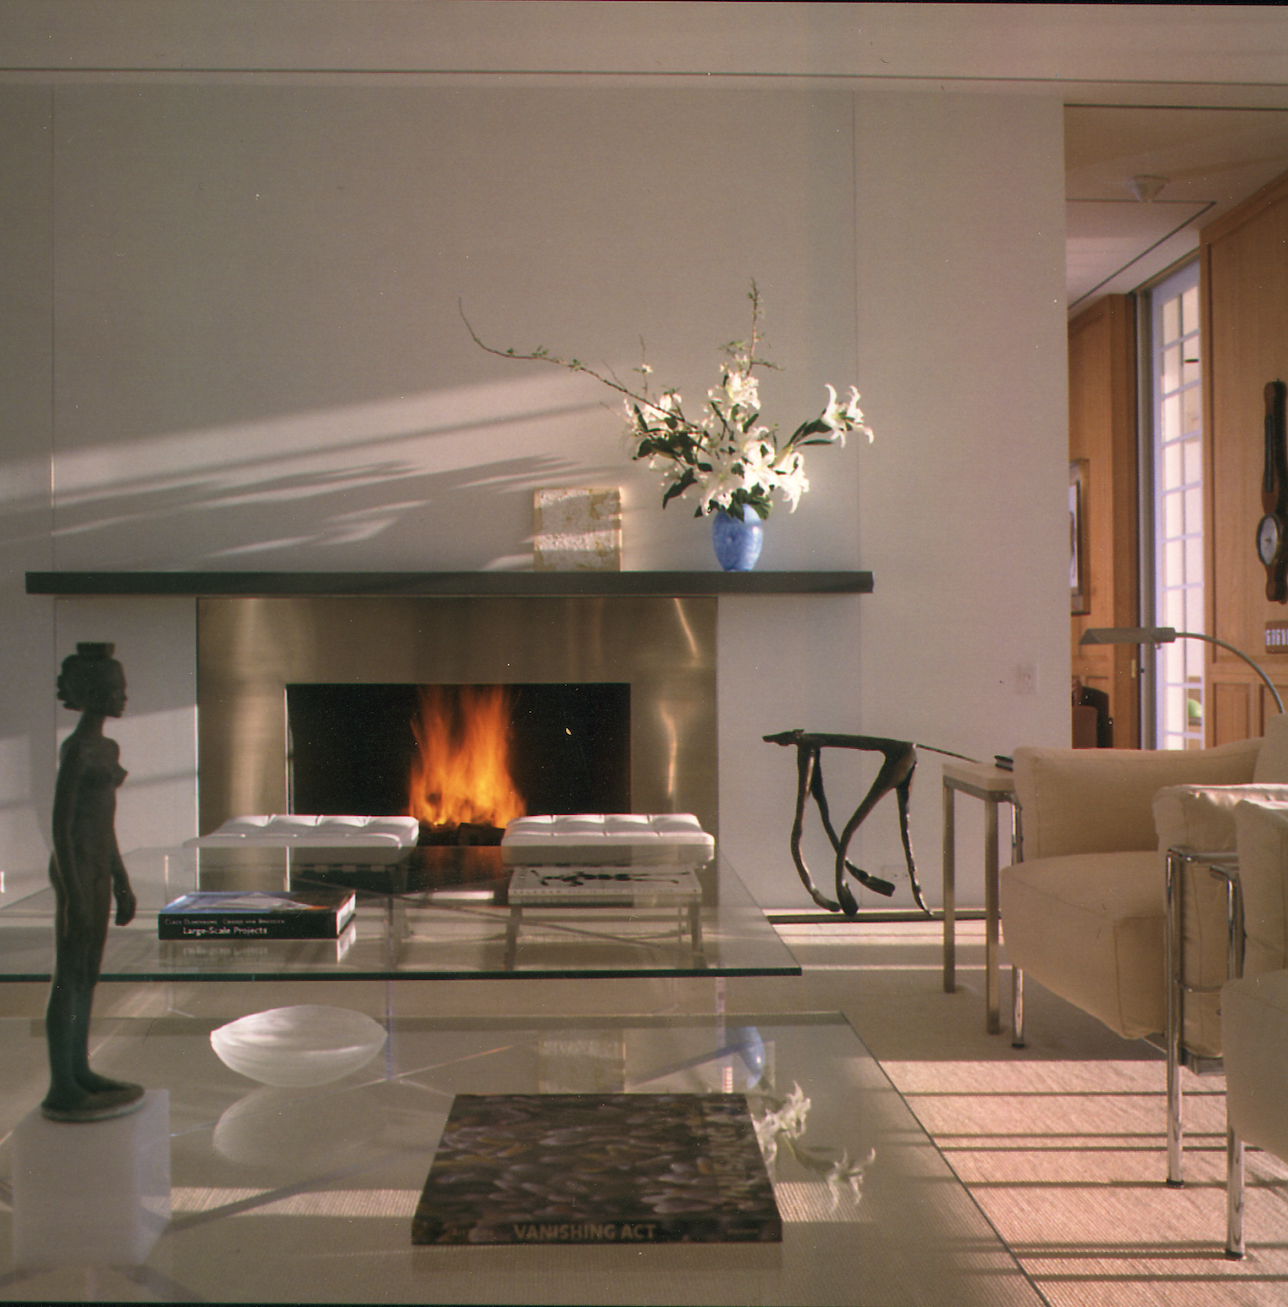 A Stainless steel fireplace surround in Windsor, Florida.